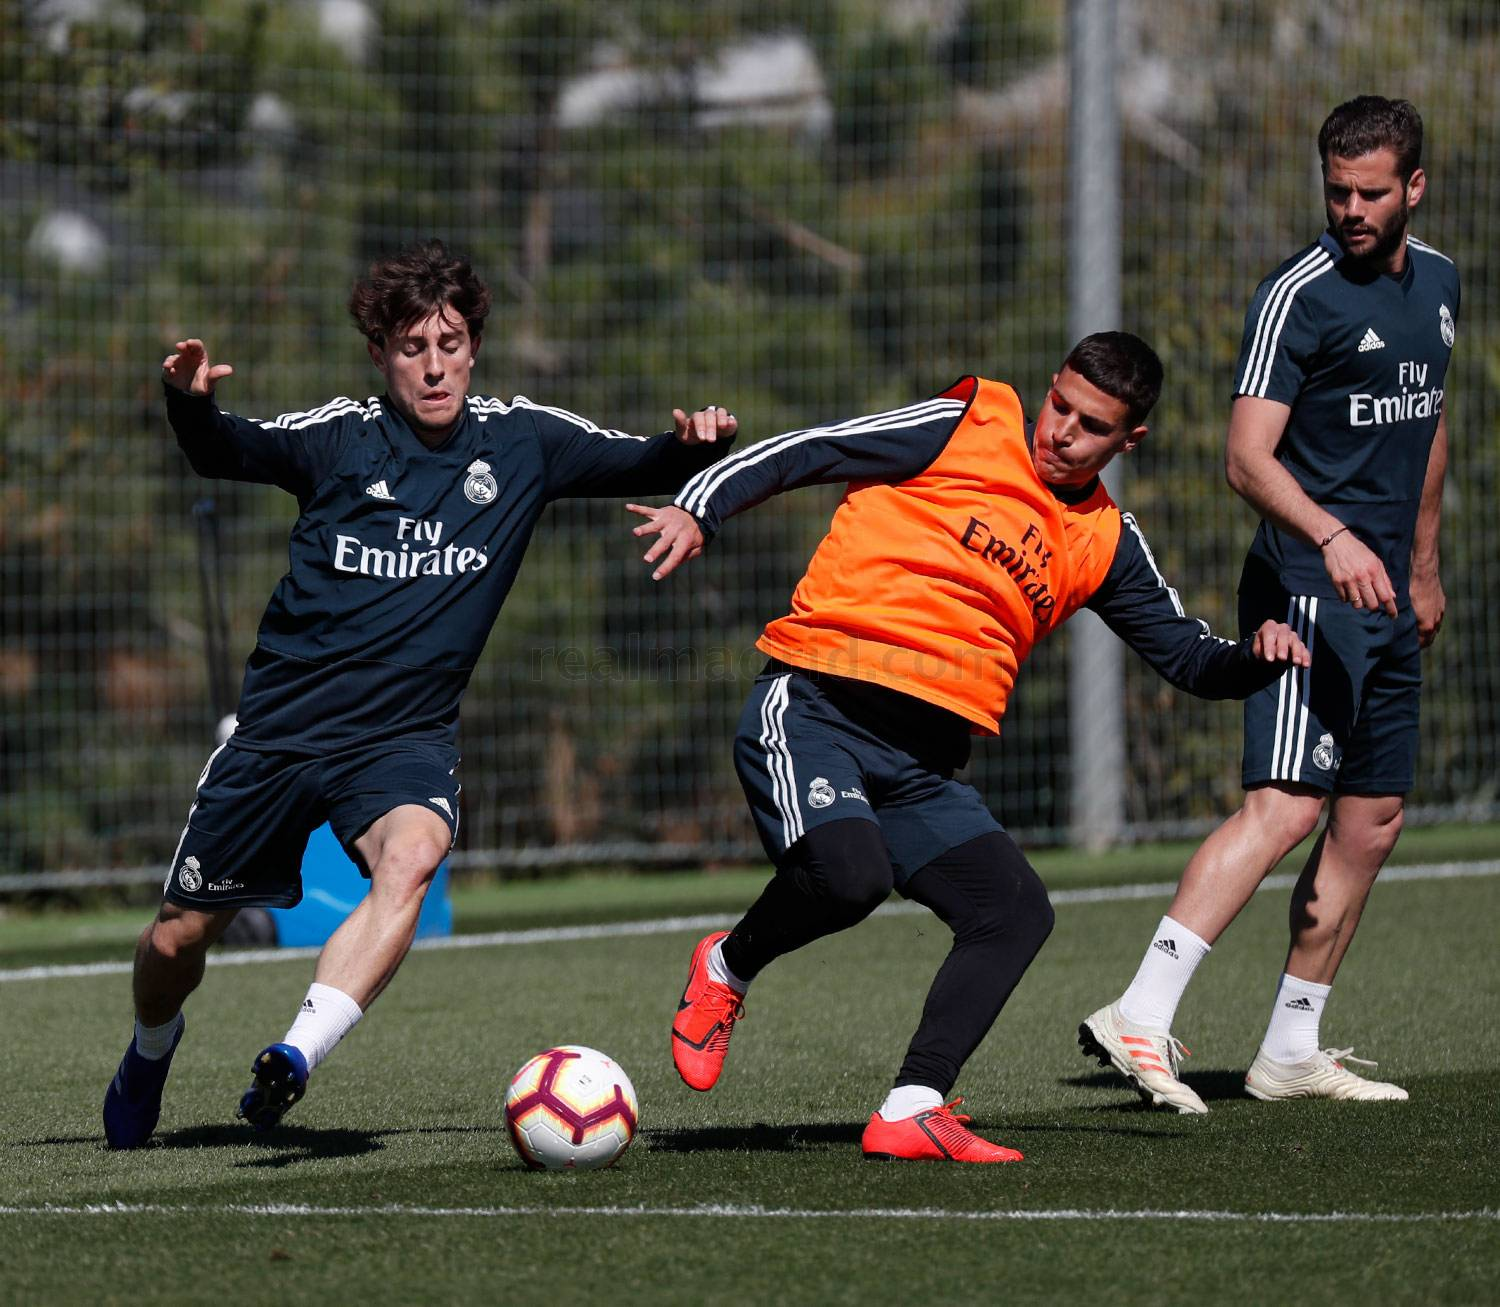 Real Madrid - Entrenamiento del Real Madrid - 20-03-2019